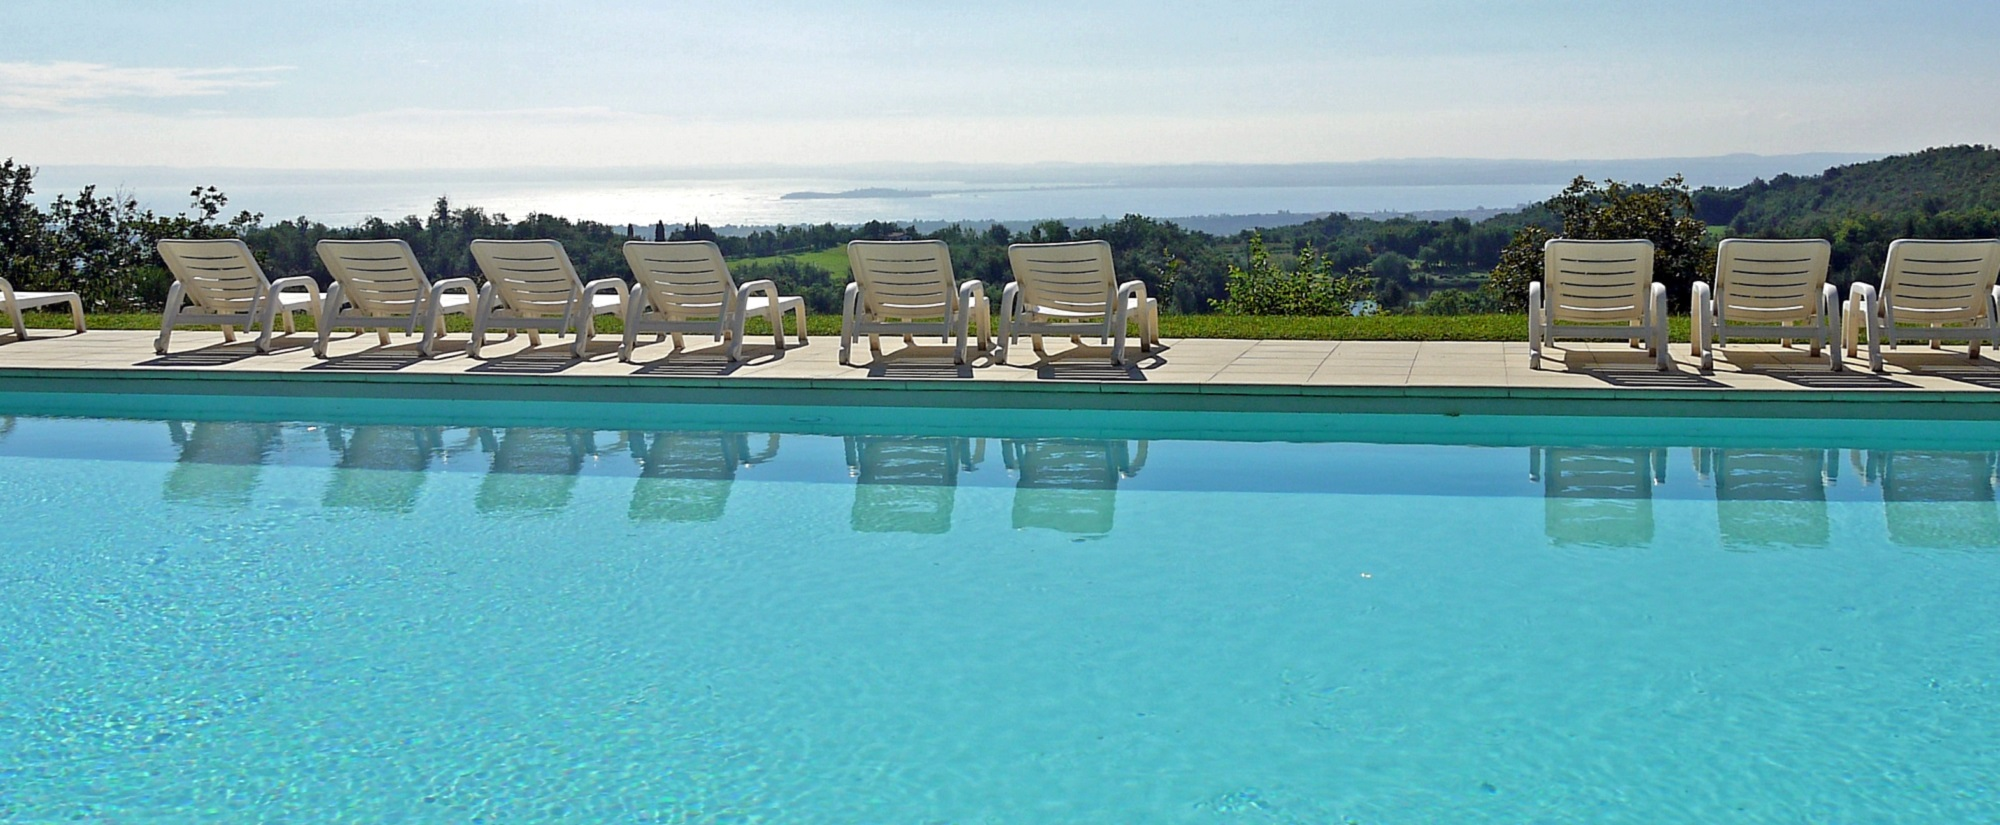 Ferienhaus Mit Pool Gardasee Privat Holiday House Holiday Home Villa Lake Garda Holiday House